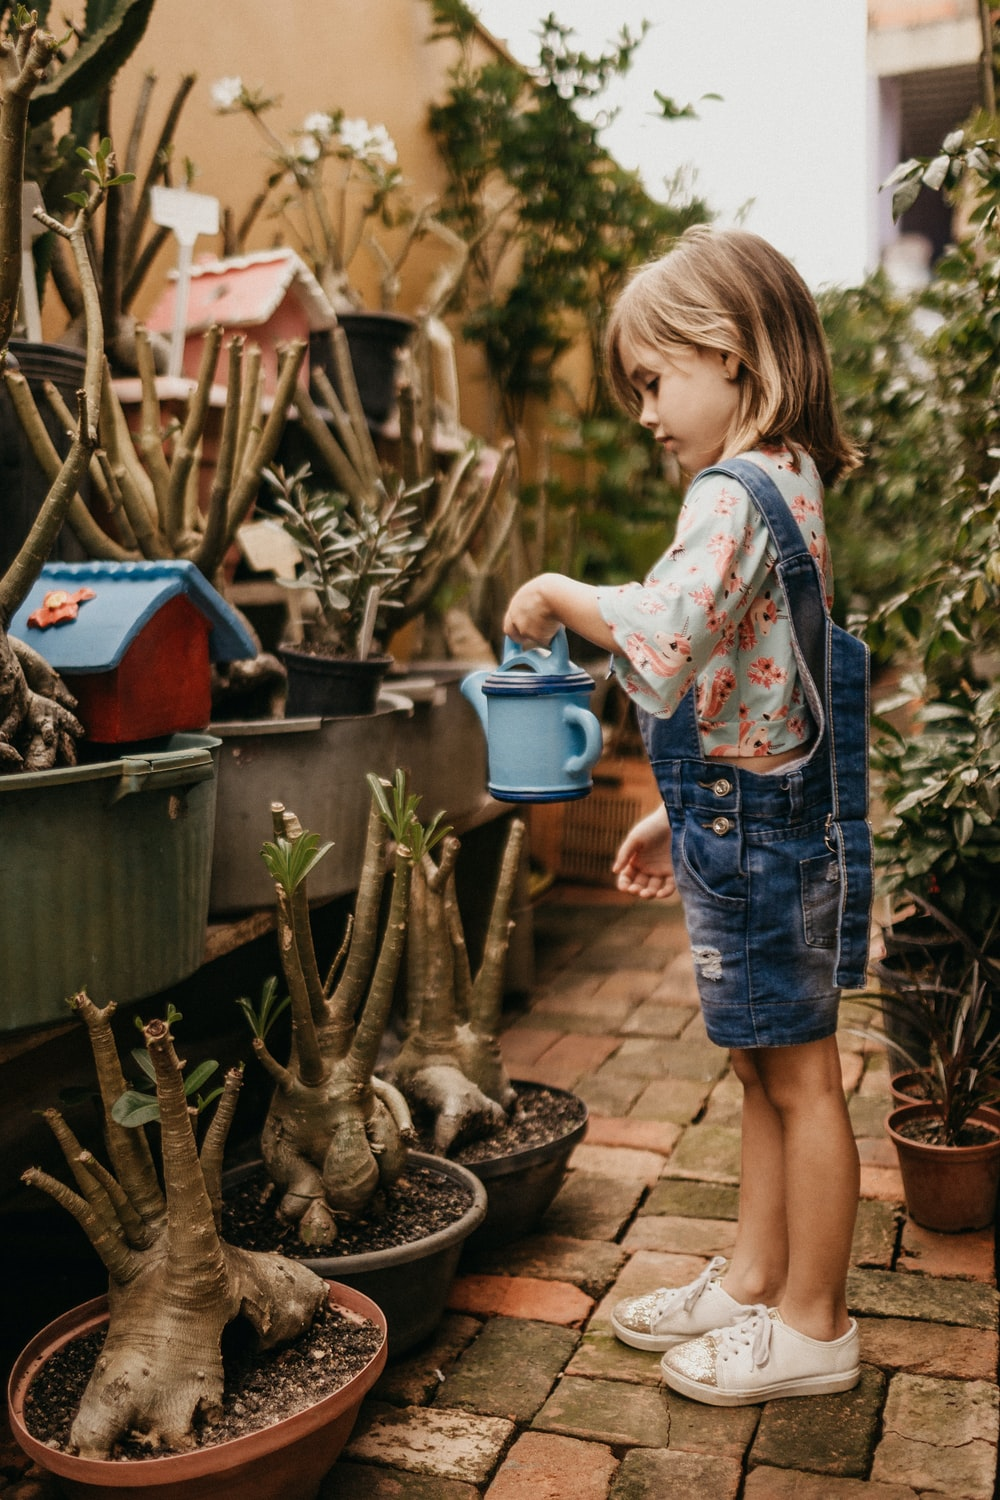 kid holding a bucket near plant during daytime close-up photography